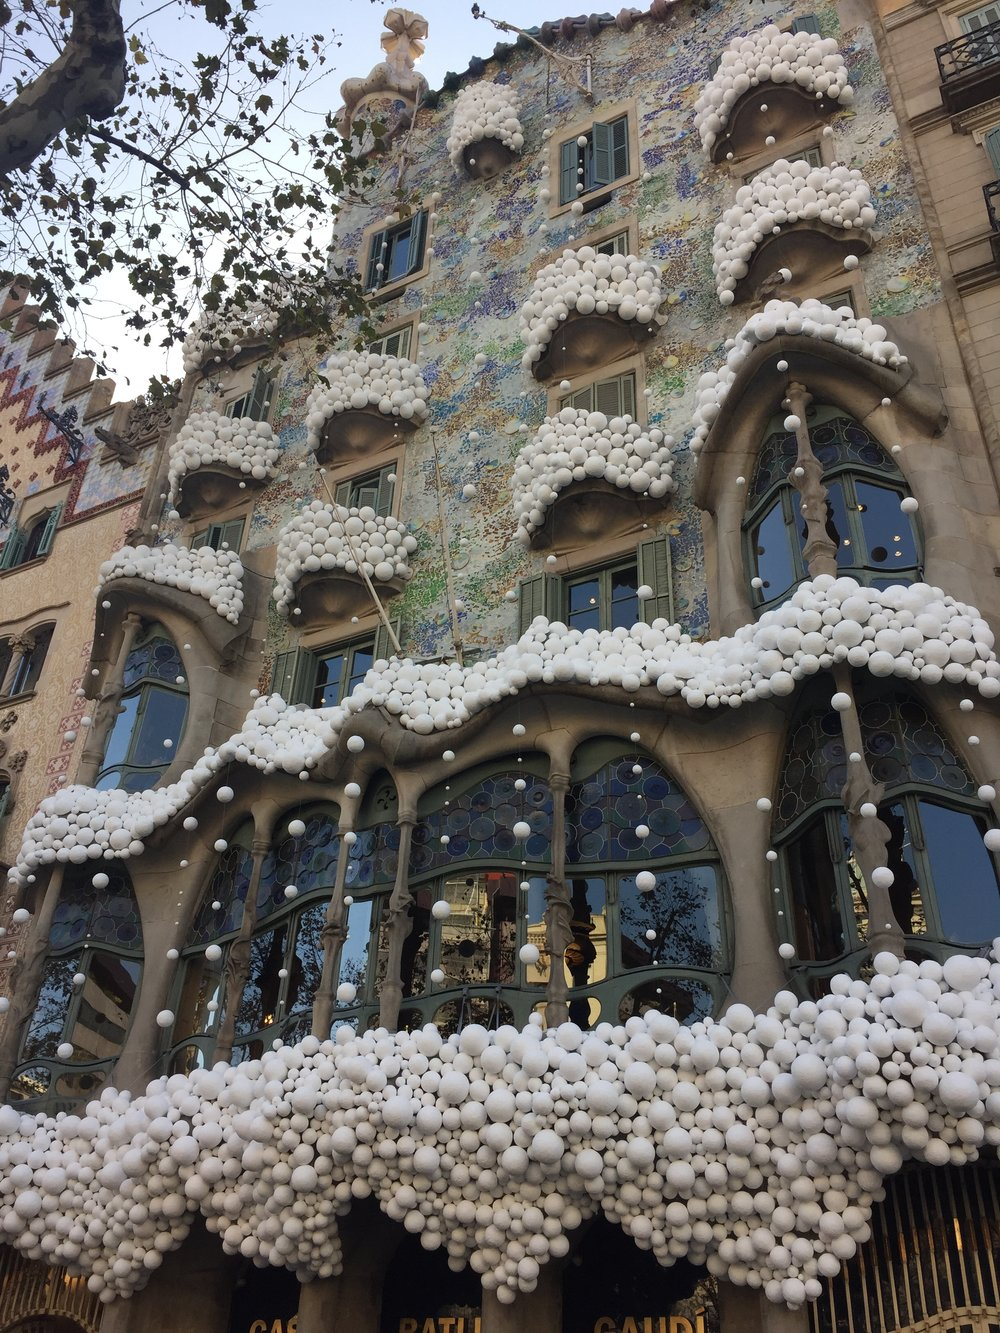 Casa Mila, which I didn't go into, but is still stunning from the outside.